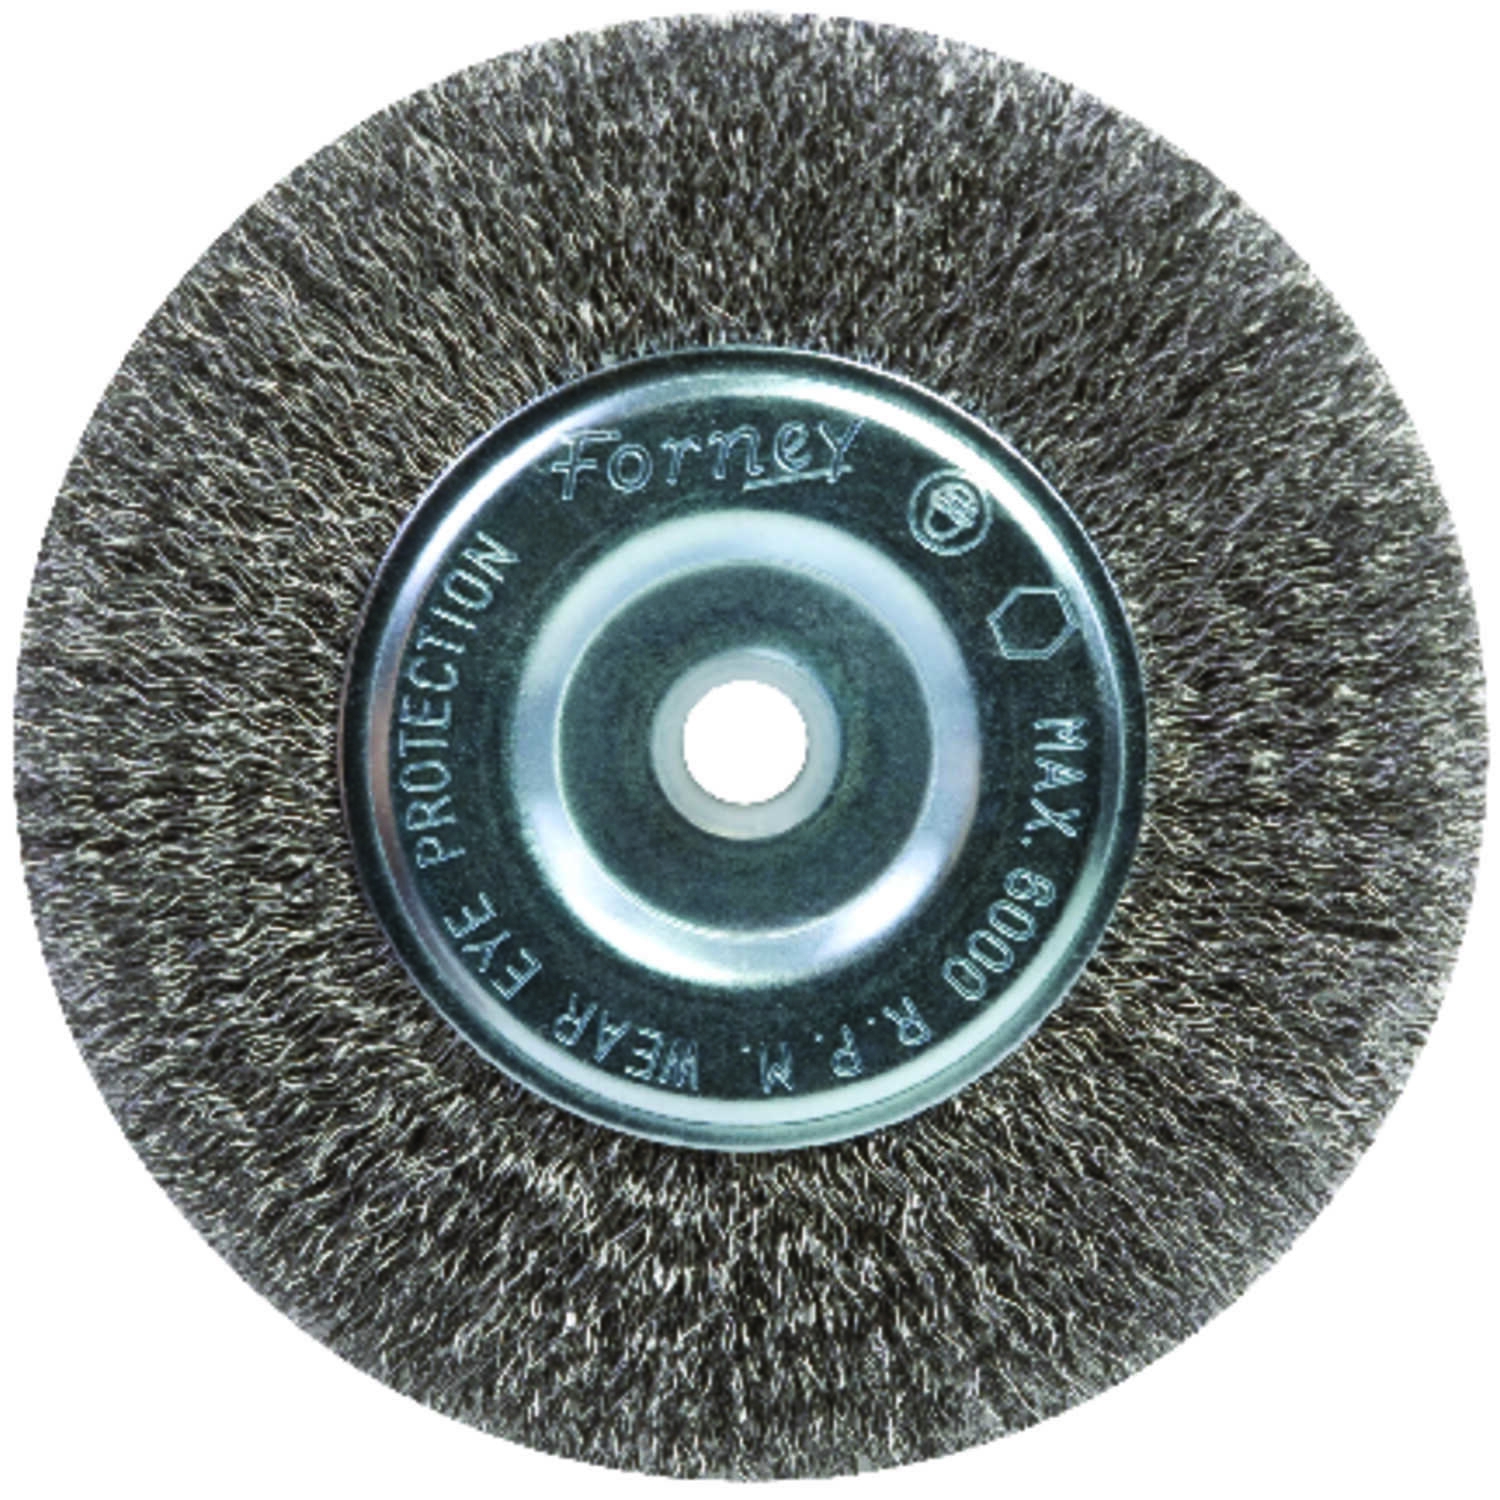 Forney  6 in. Crimped  Wire Wheel Brush  Metal  6000 rpm 1 pc.